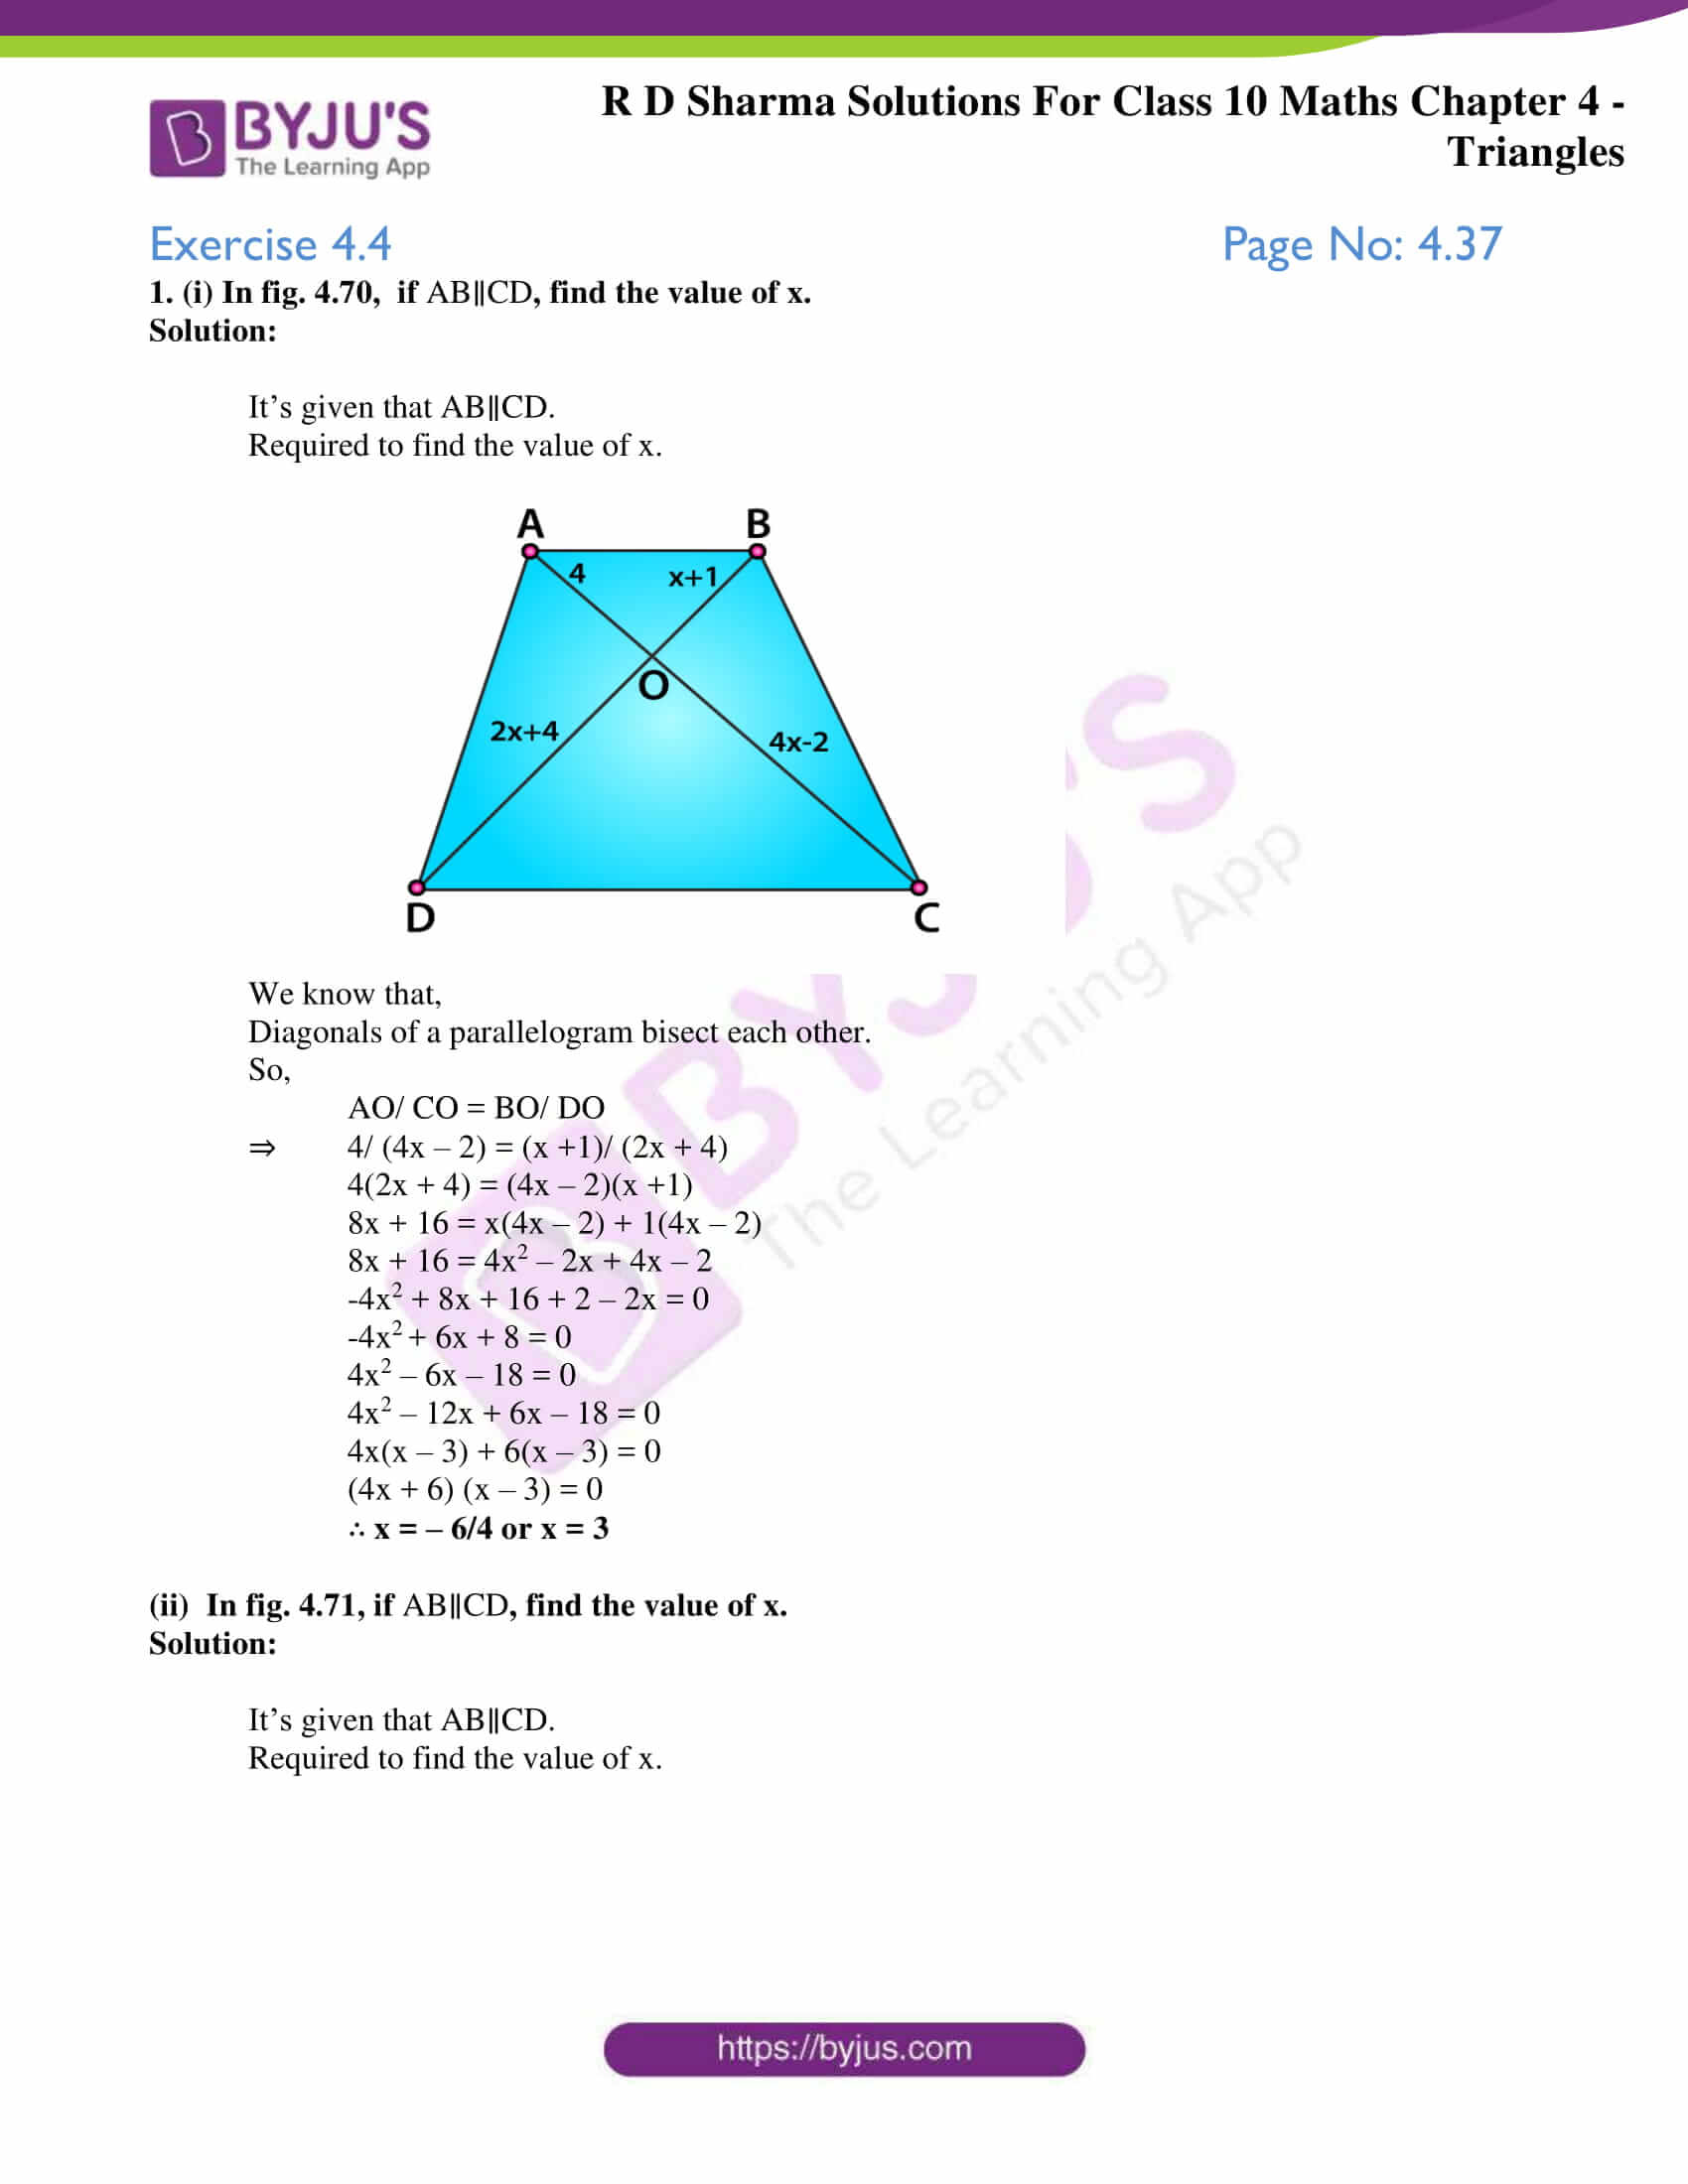 rd sharma solutions for class 10 chapter 4 ex 4.4